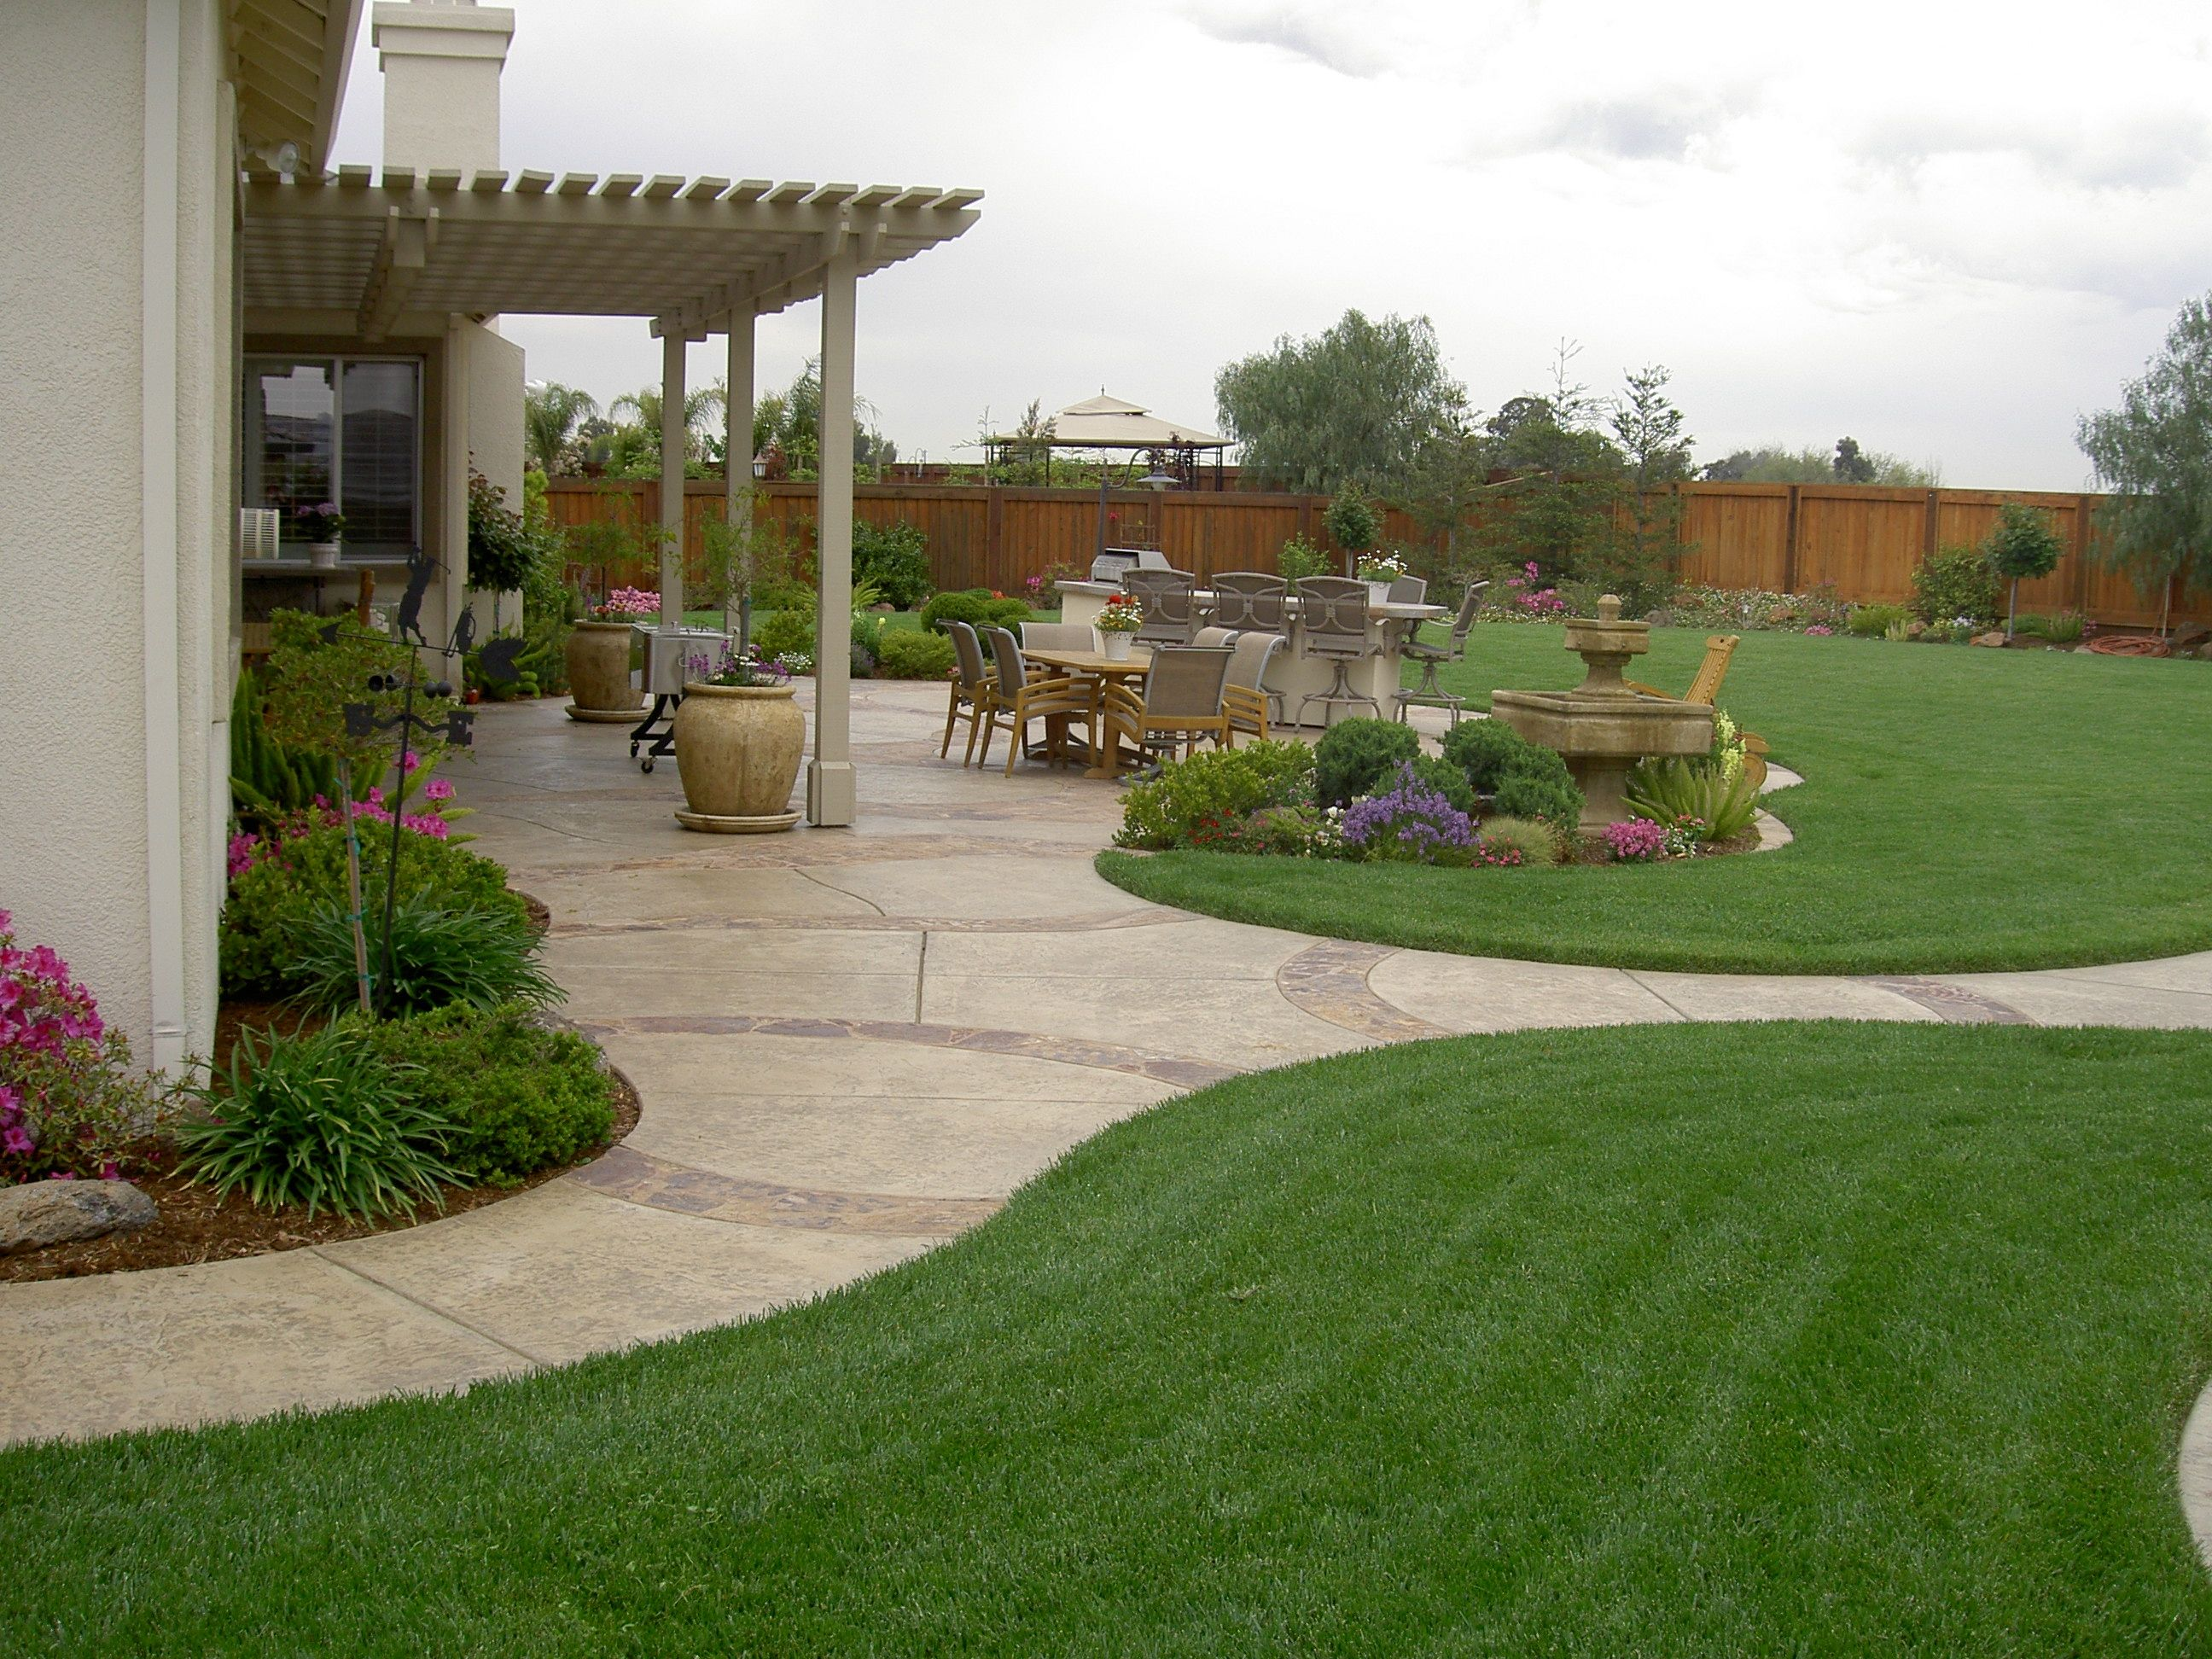 Inspirational Simple Front Yard Landscaping Ideas On A Budget